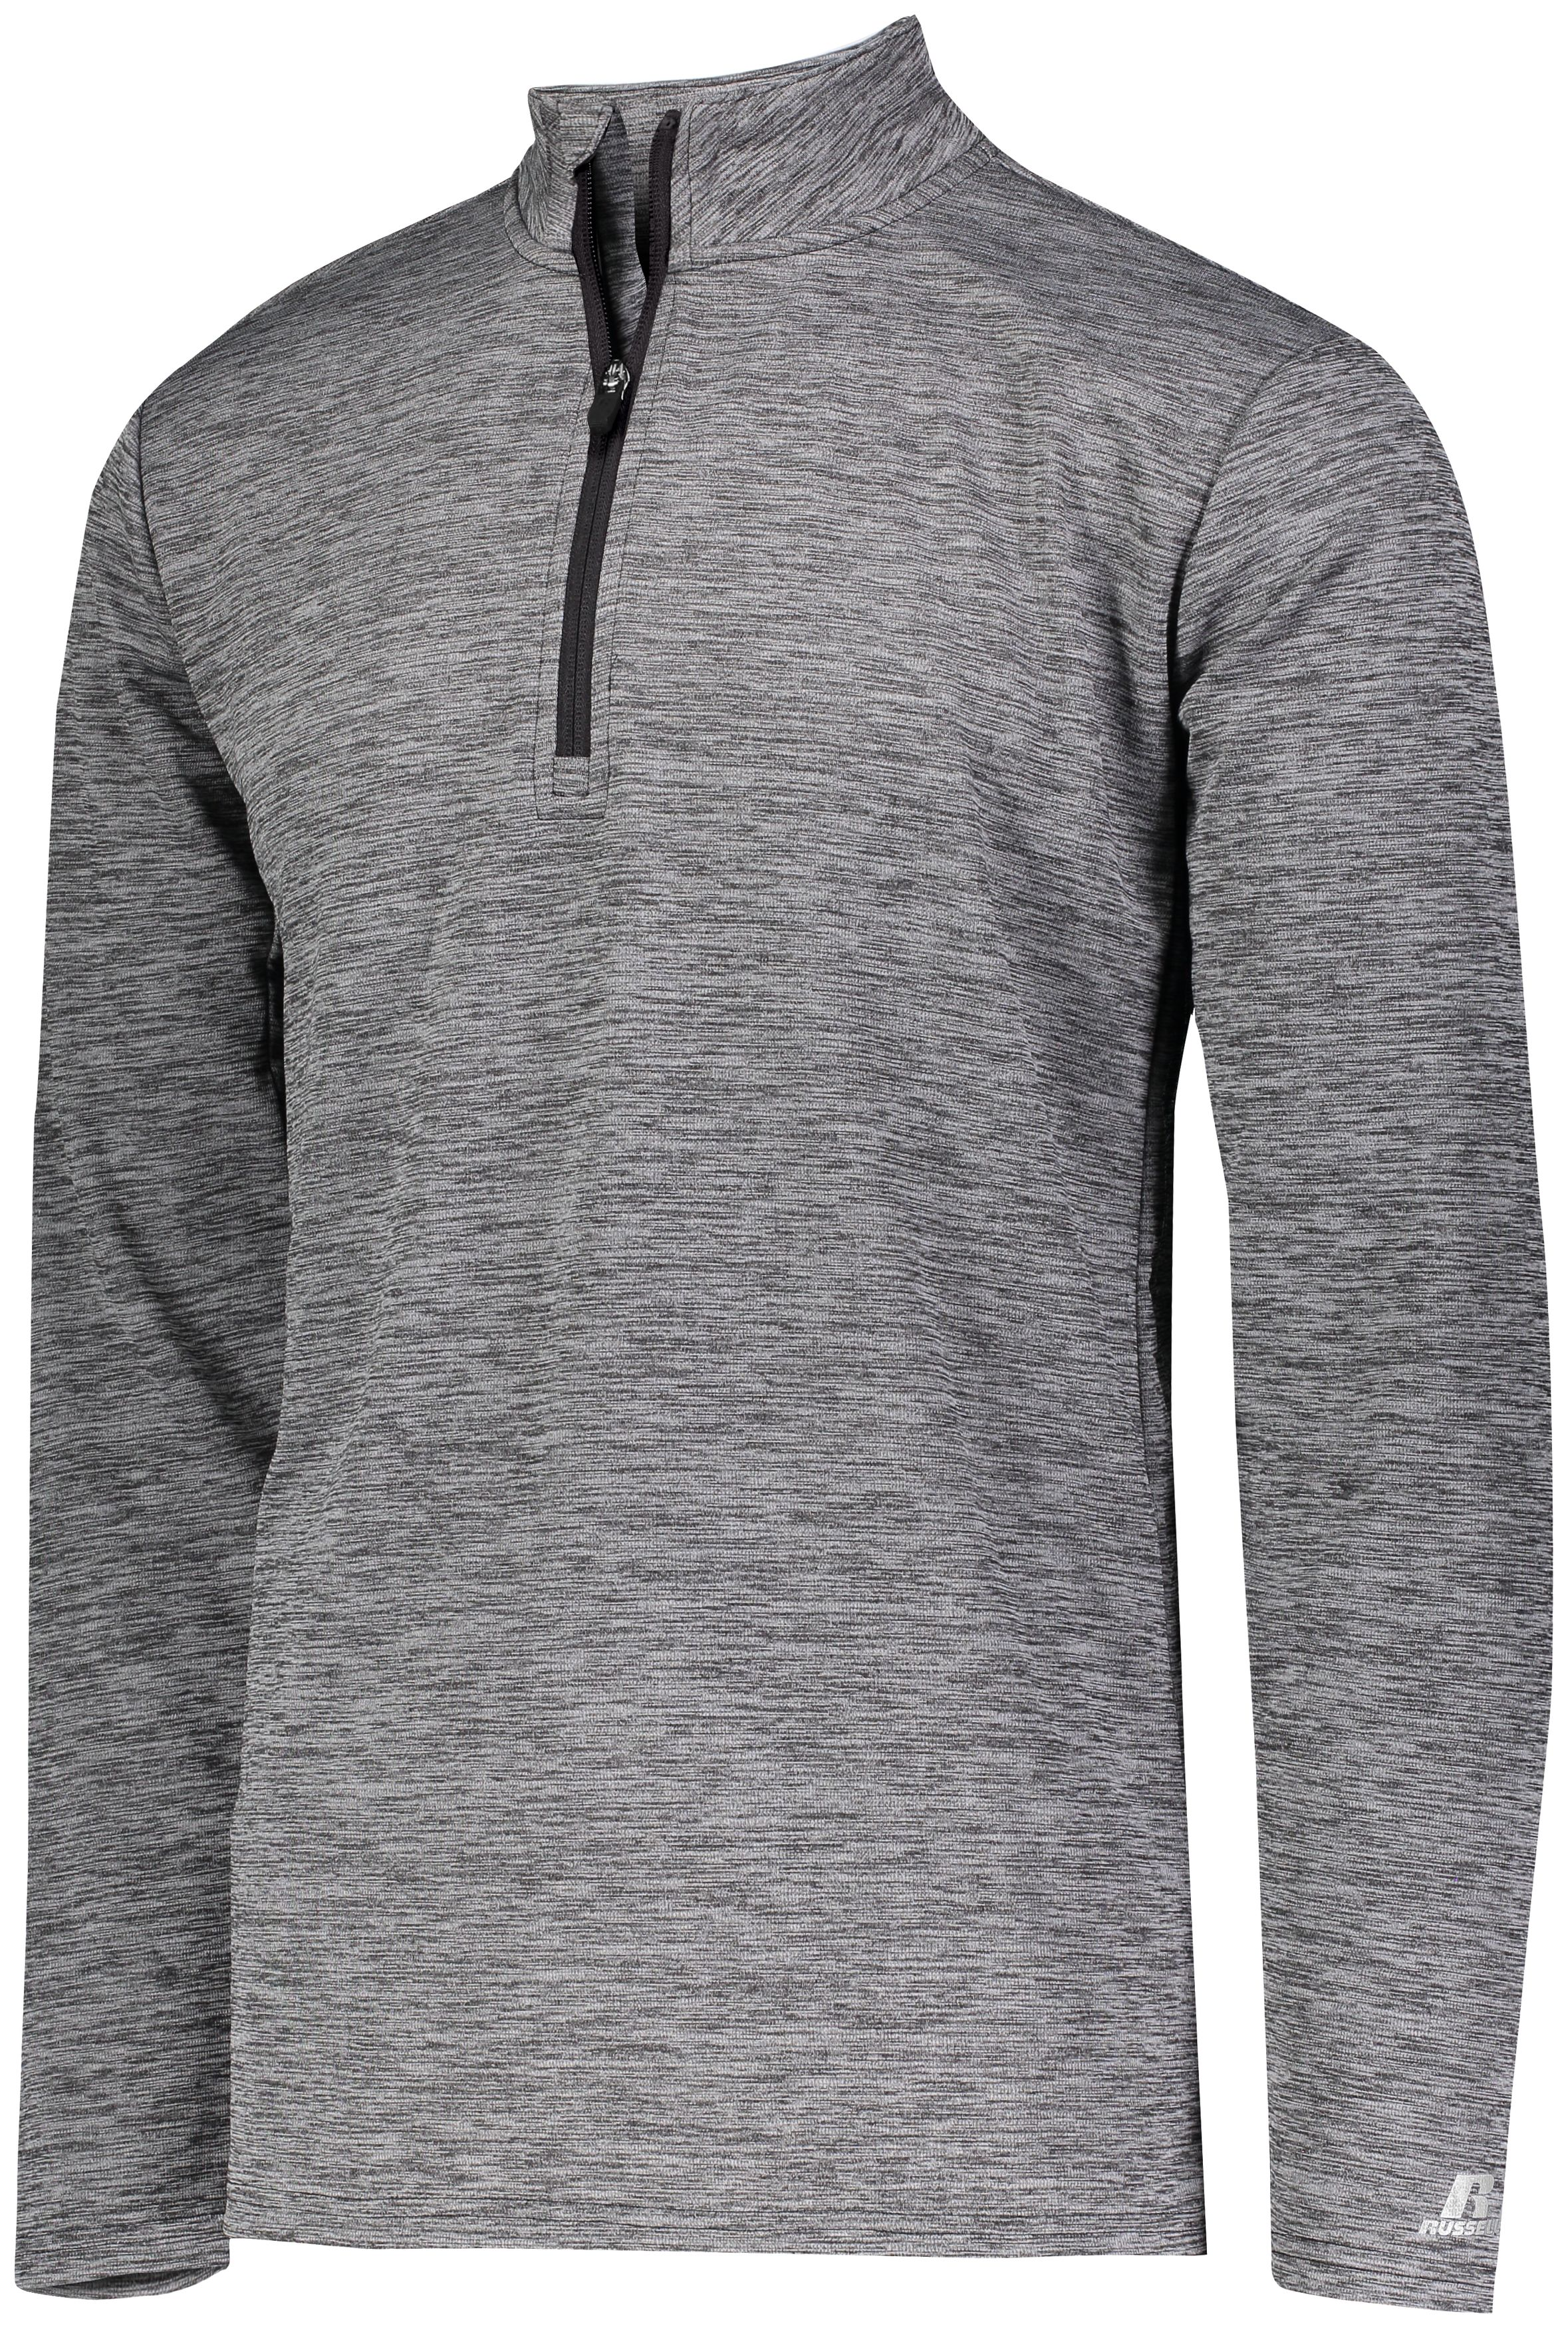 Dri-Power Lightweight 1/4 Zip Pullover - BLACK